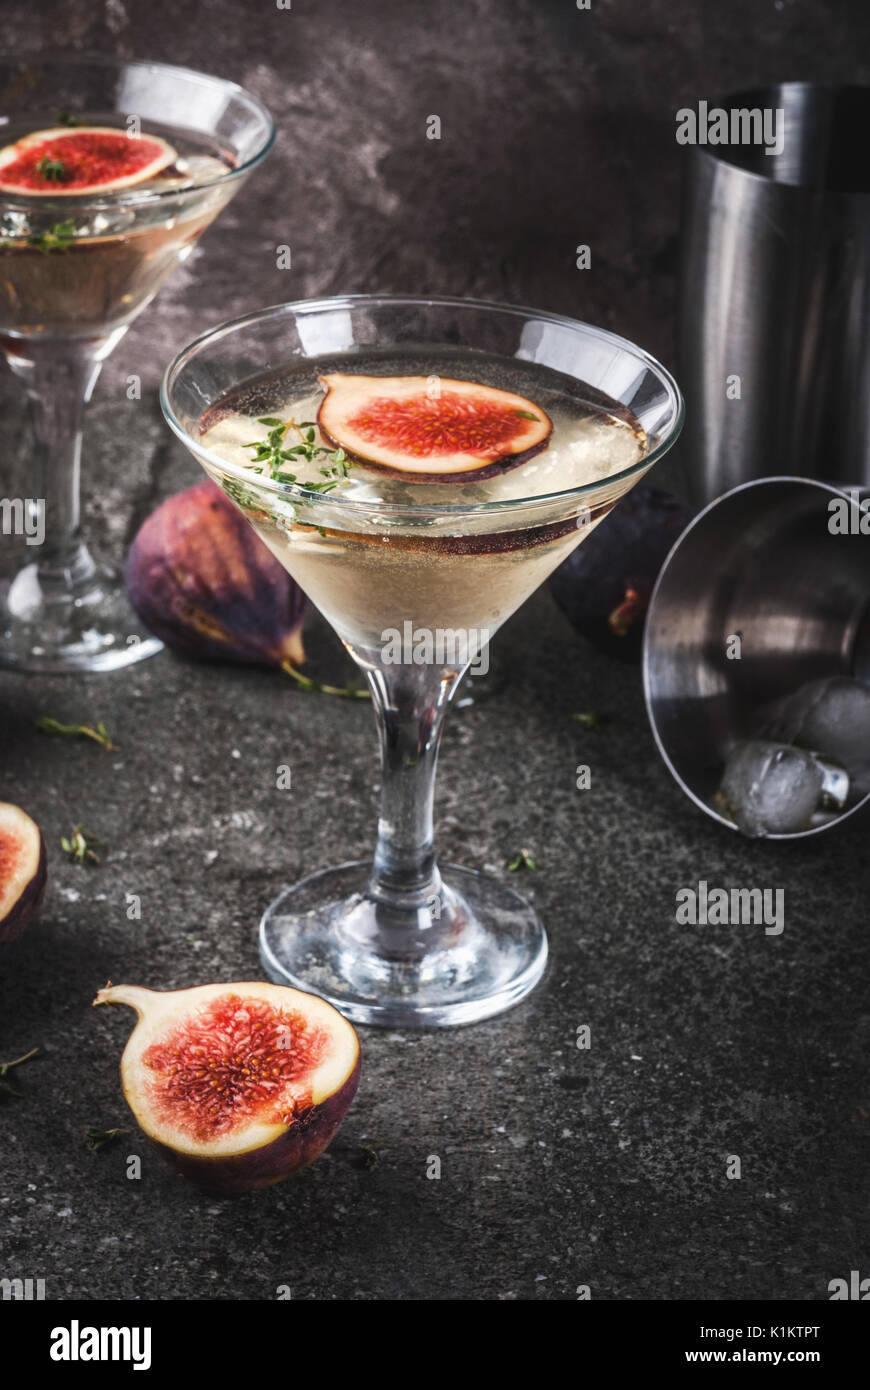 Fall and winter drinks recipes, Martini cocktail with fig, thyme and honey, on black stone table, copy space Stock Photo